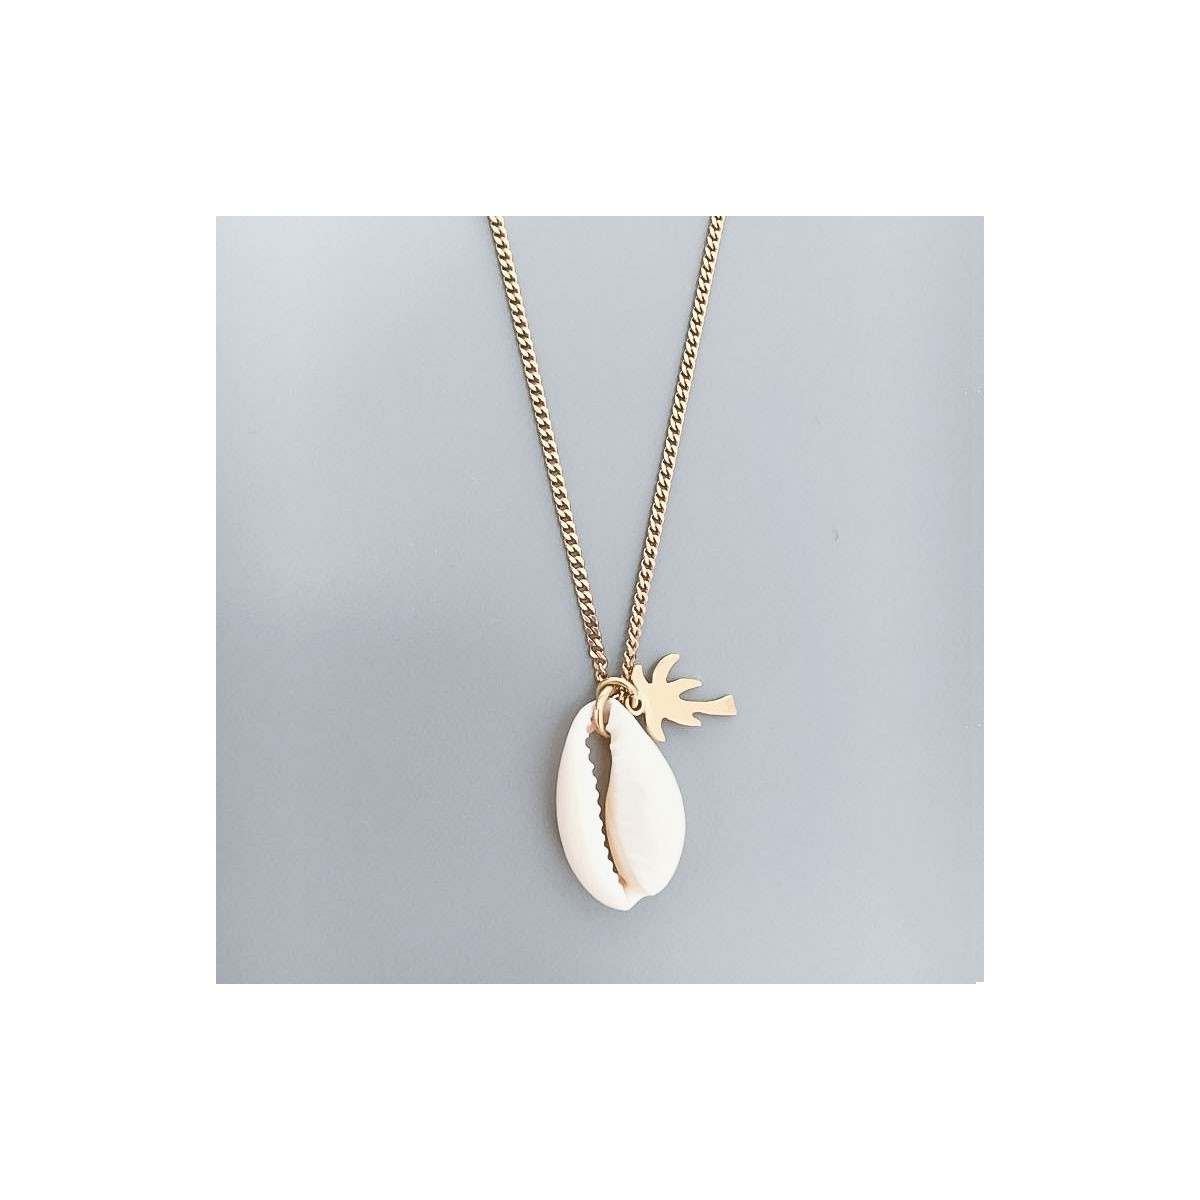 NECKLACE CHARM SHELL GOLD PLATED